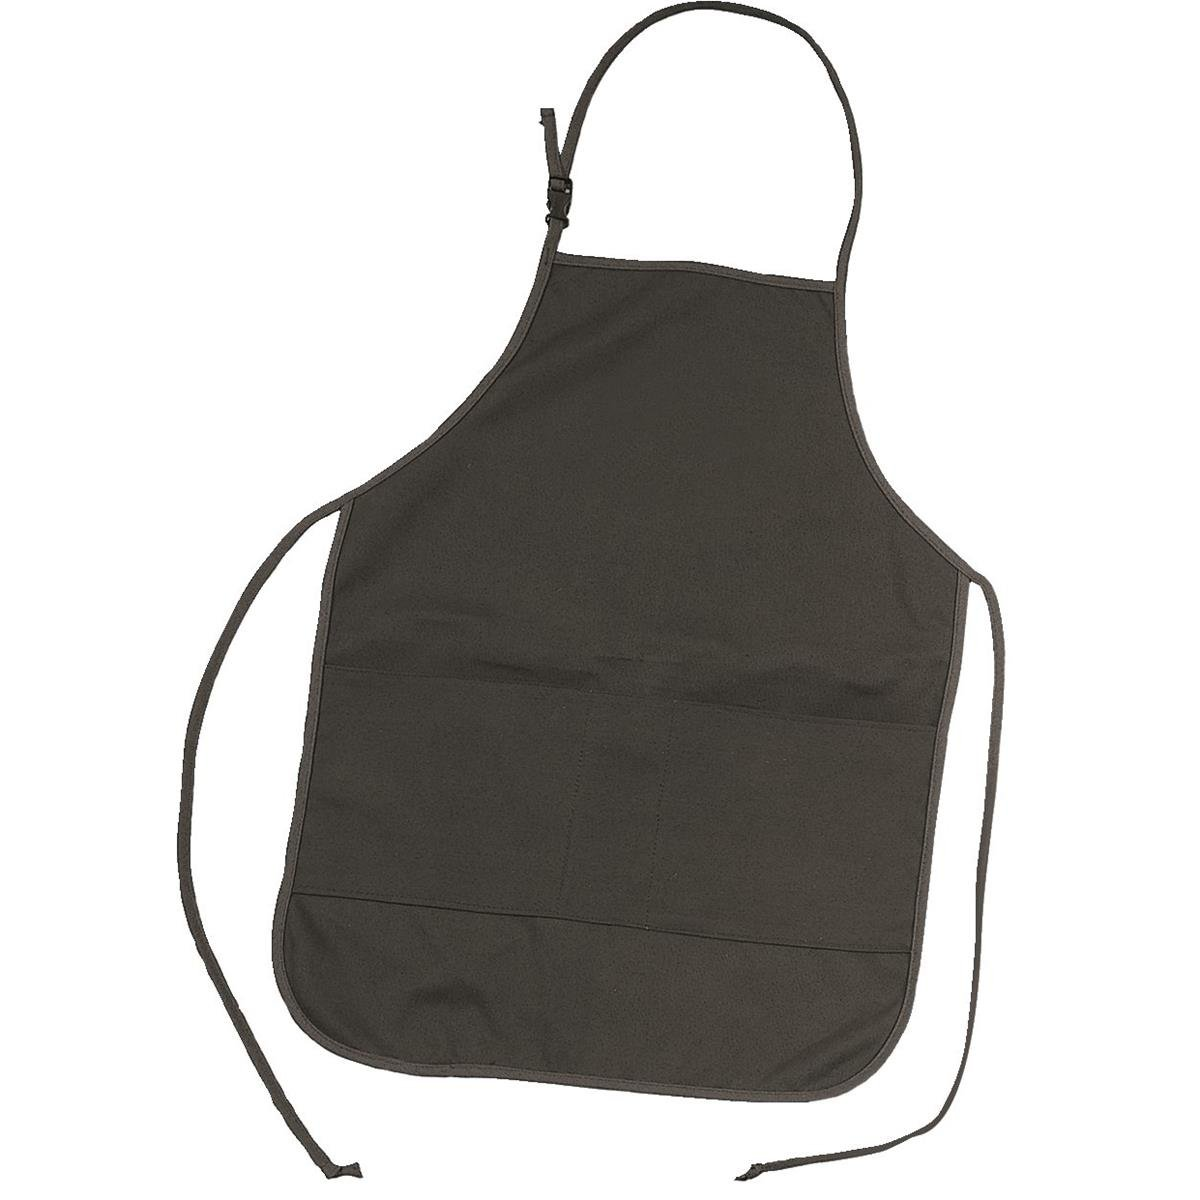 GEMPLER'S Heavy-Duty Cotton Duck Work Apron, Ideal for Garden Centers, Green Houses or Nurseries, Machine and Repair Shops, 26'' L x 21-1/2''W, Black